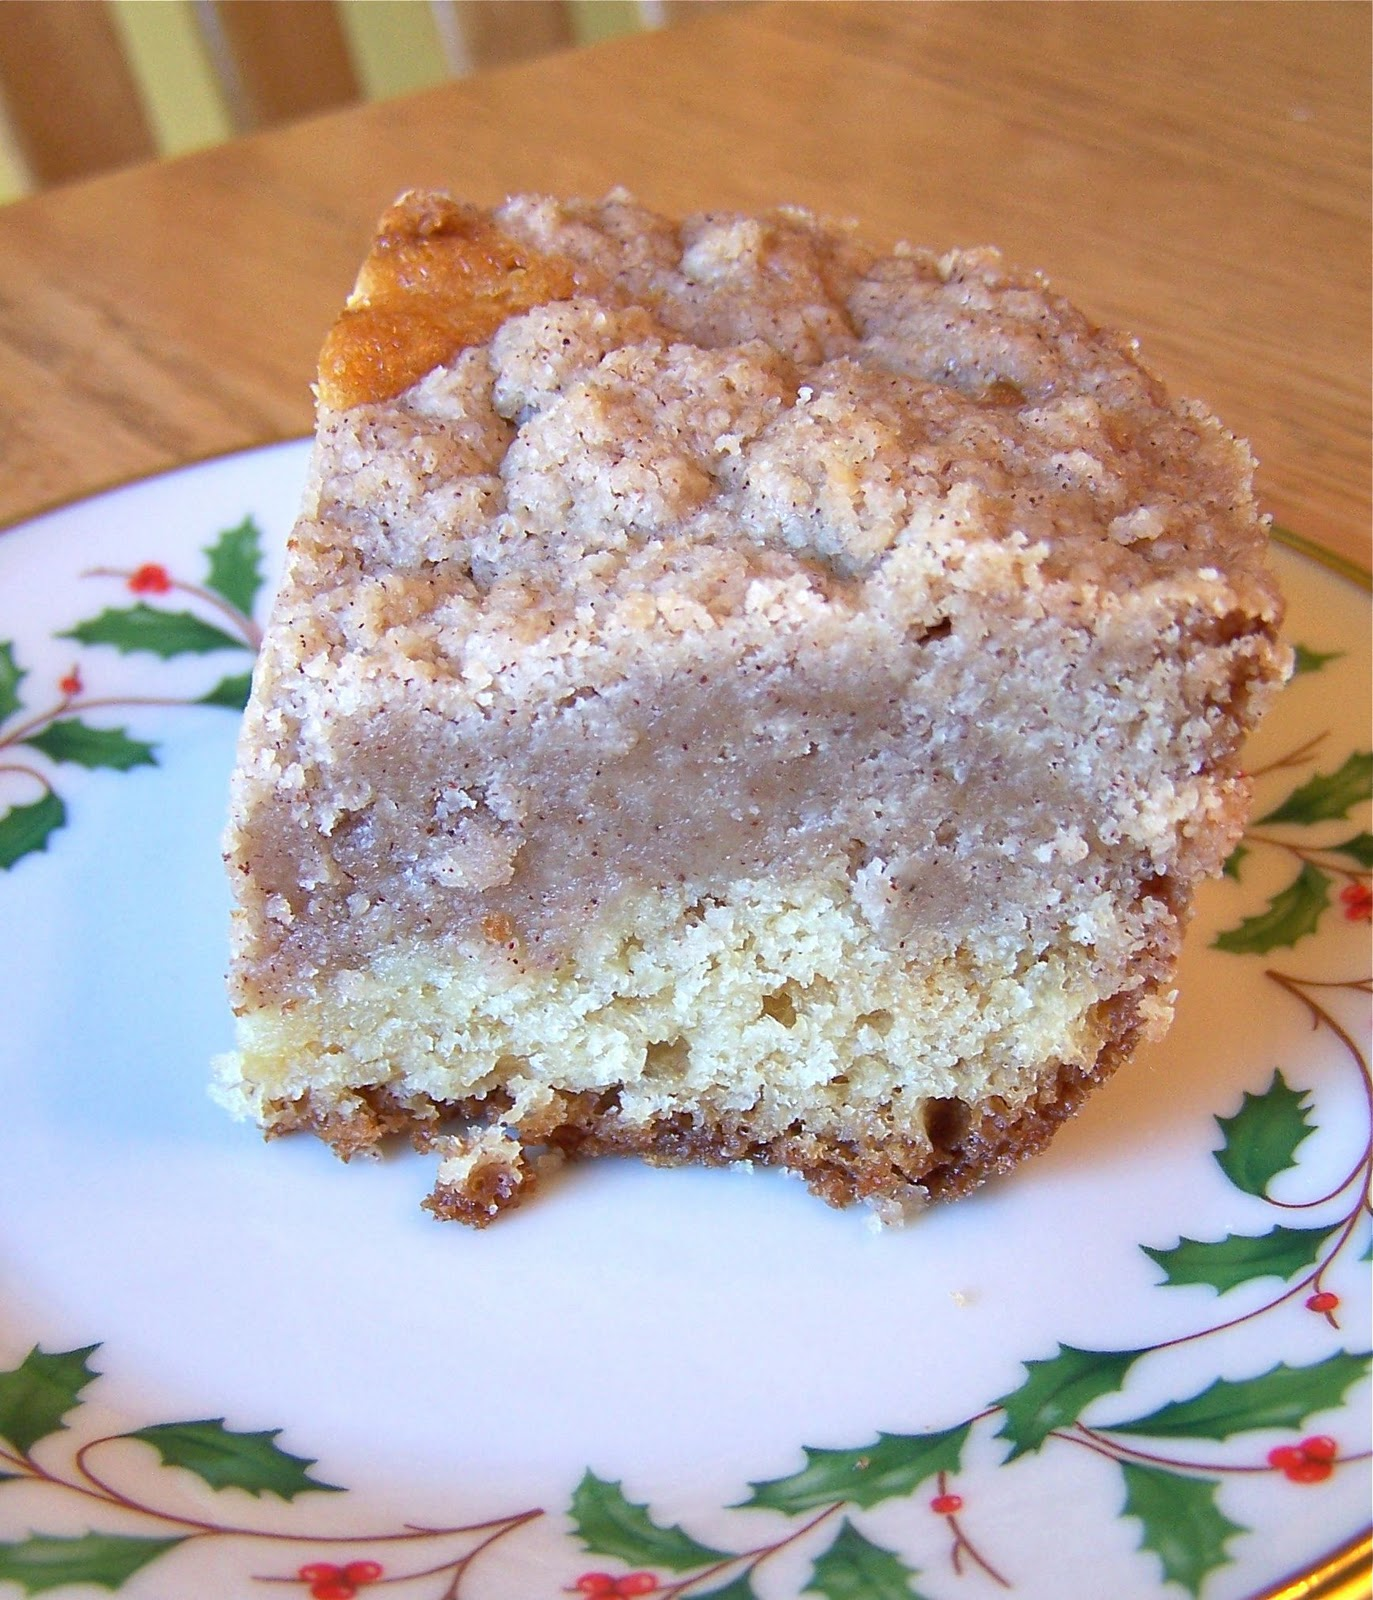 Heather's Recipes: Classic Crumb Cake